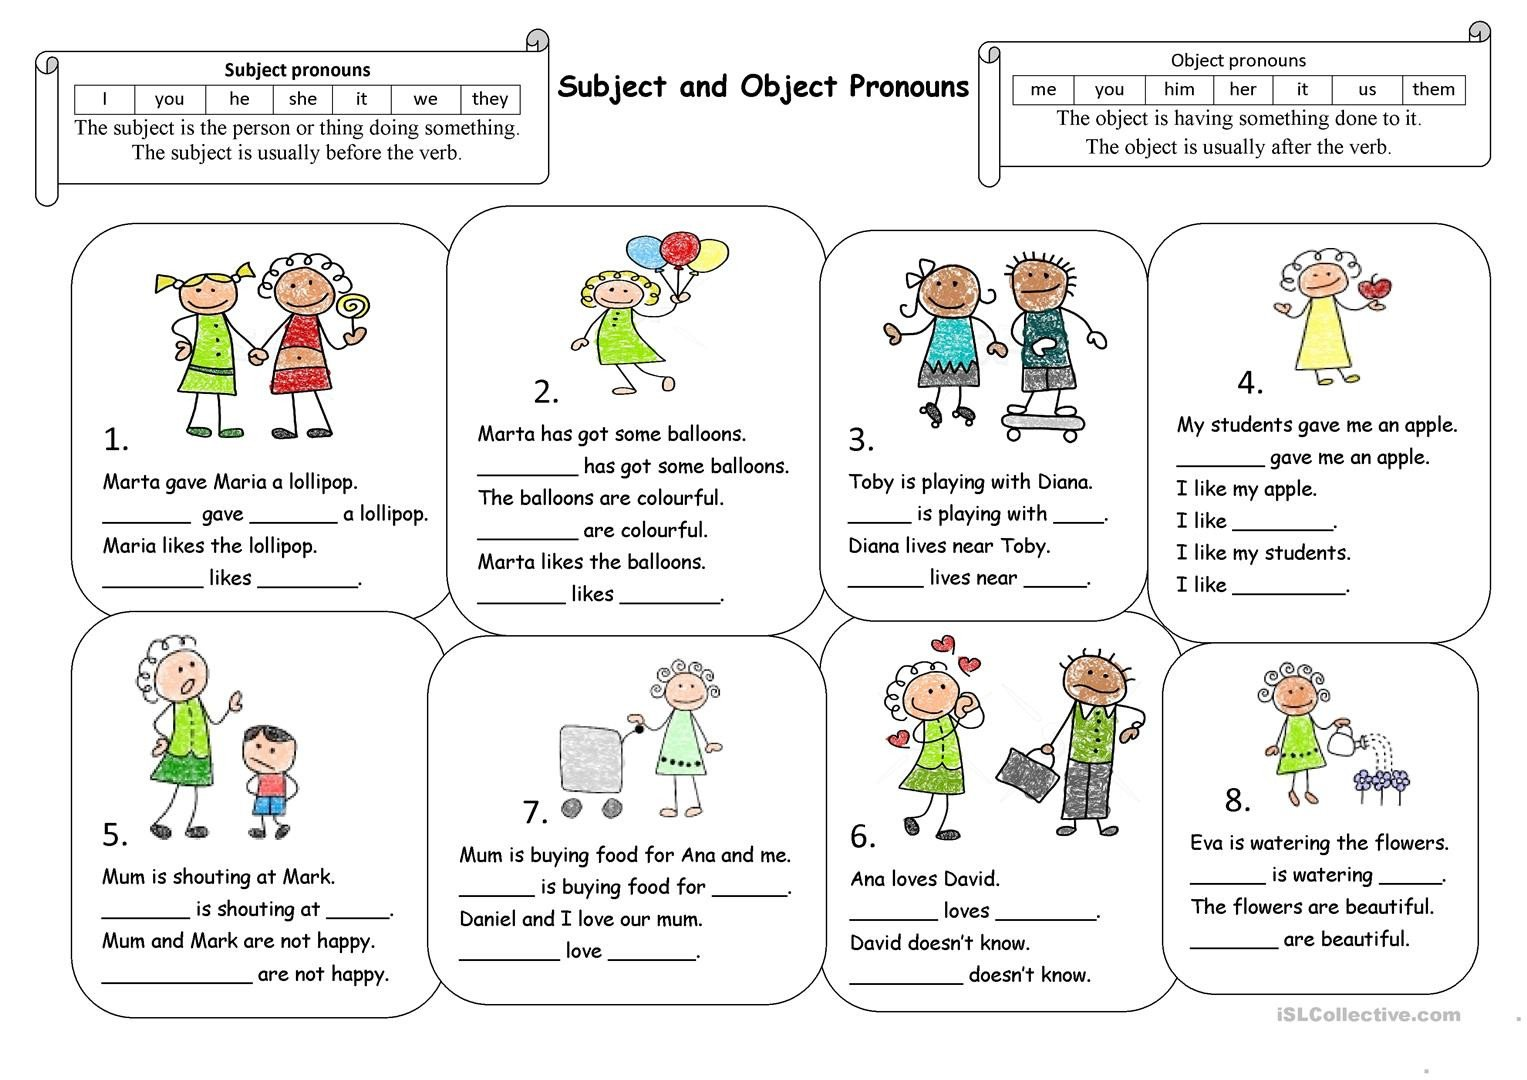 subject and object pronouns fun activities games icebreakers oneonone activiti 1